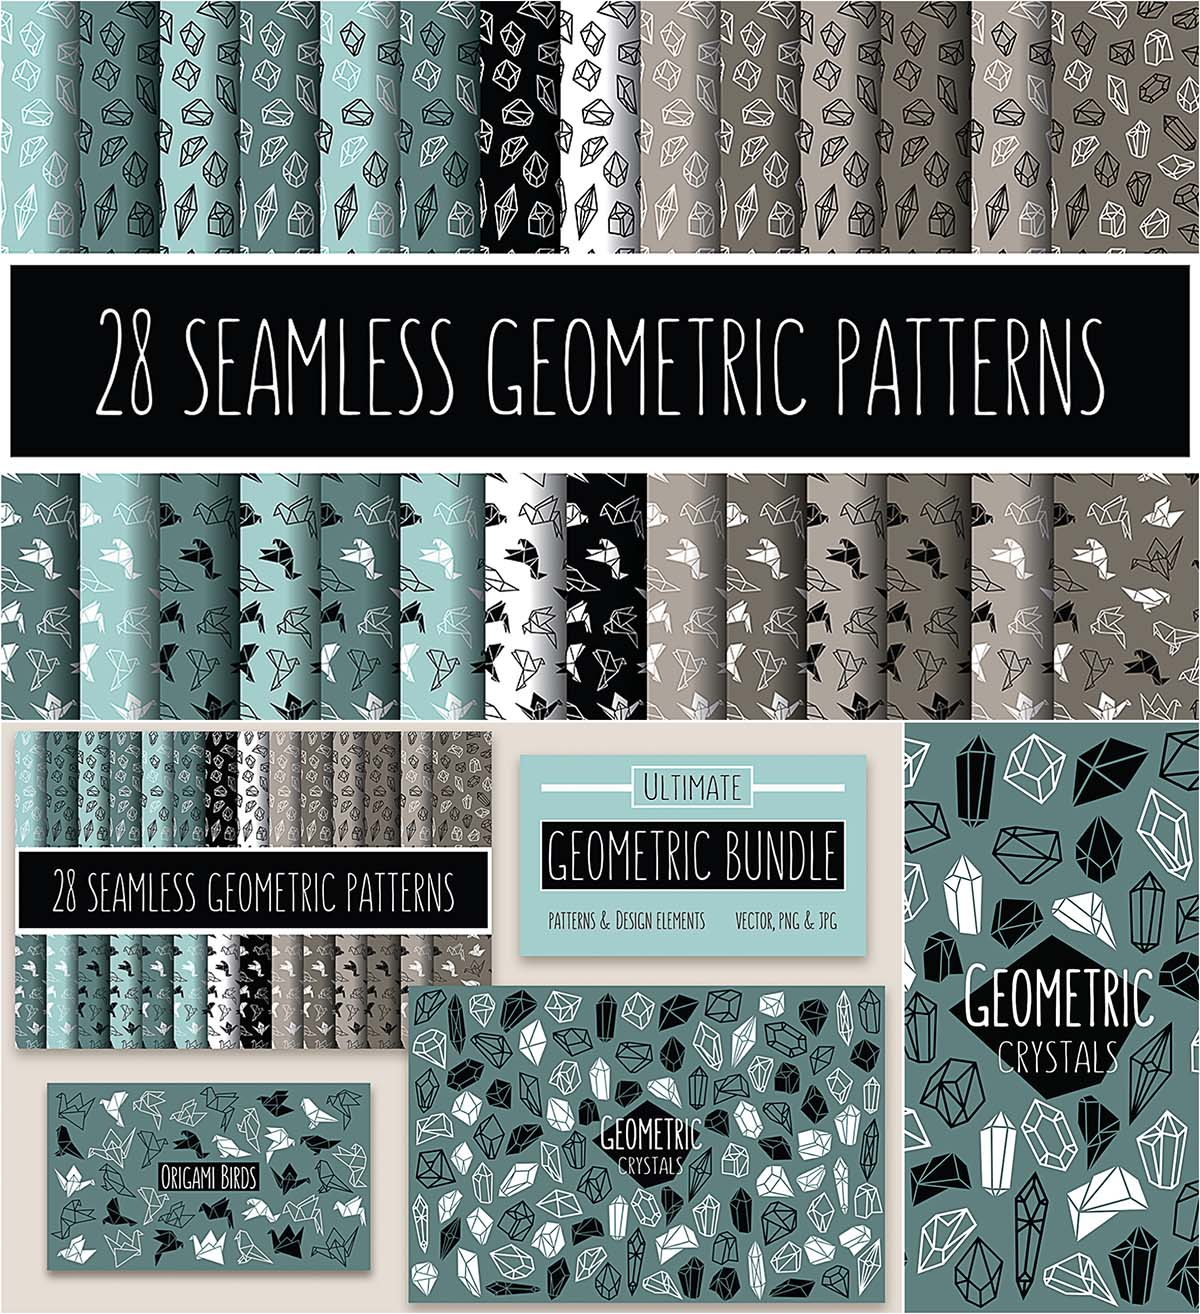 Geometric pattern and elements vector set